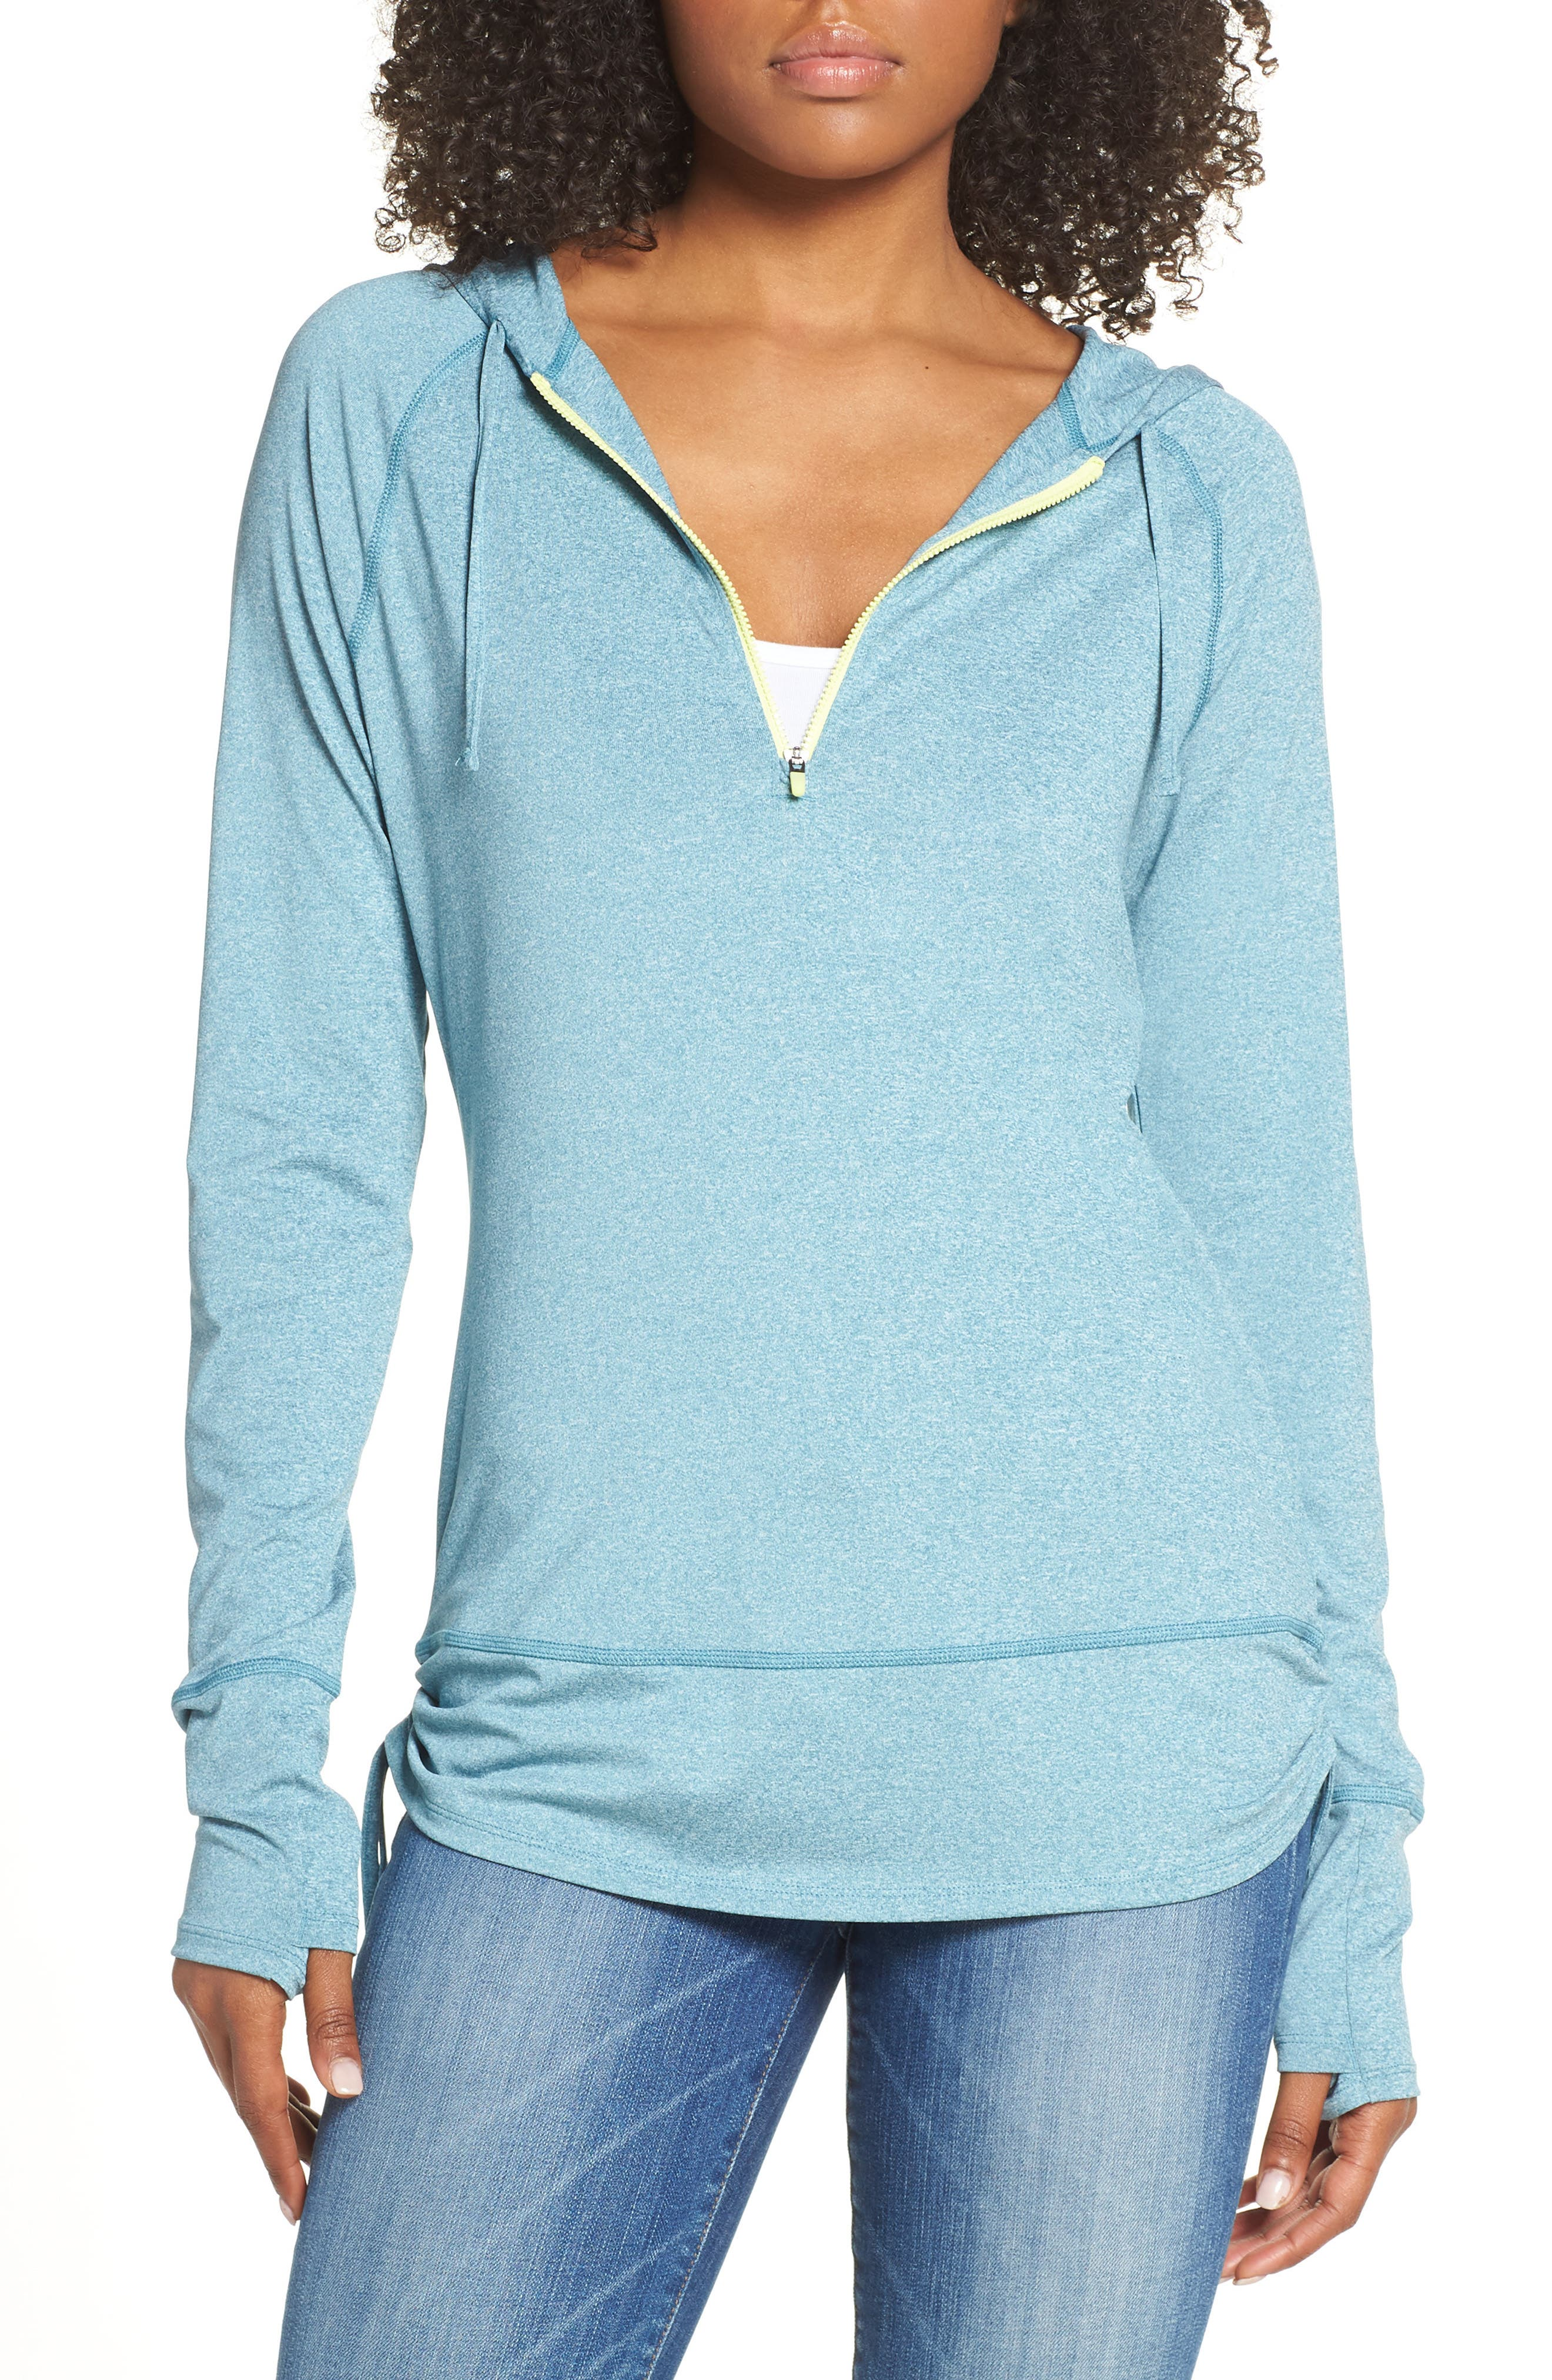 THE NORTH FACE, Shade Me Quarter Zip Hoodie, Main thumbnail 1, color, STORM BLUE HEATHER